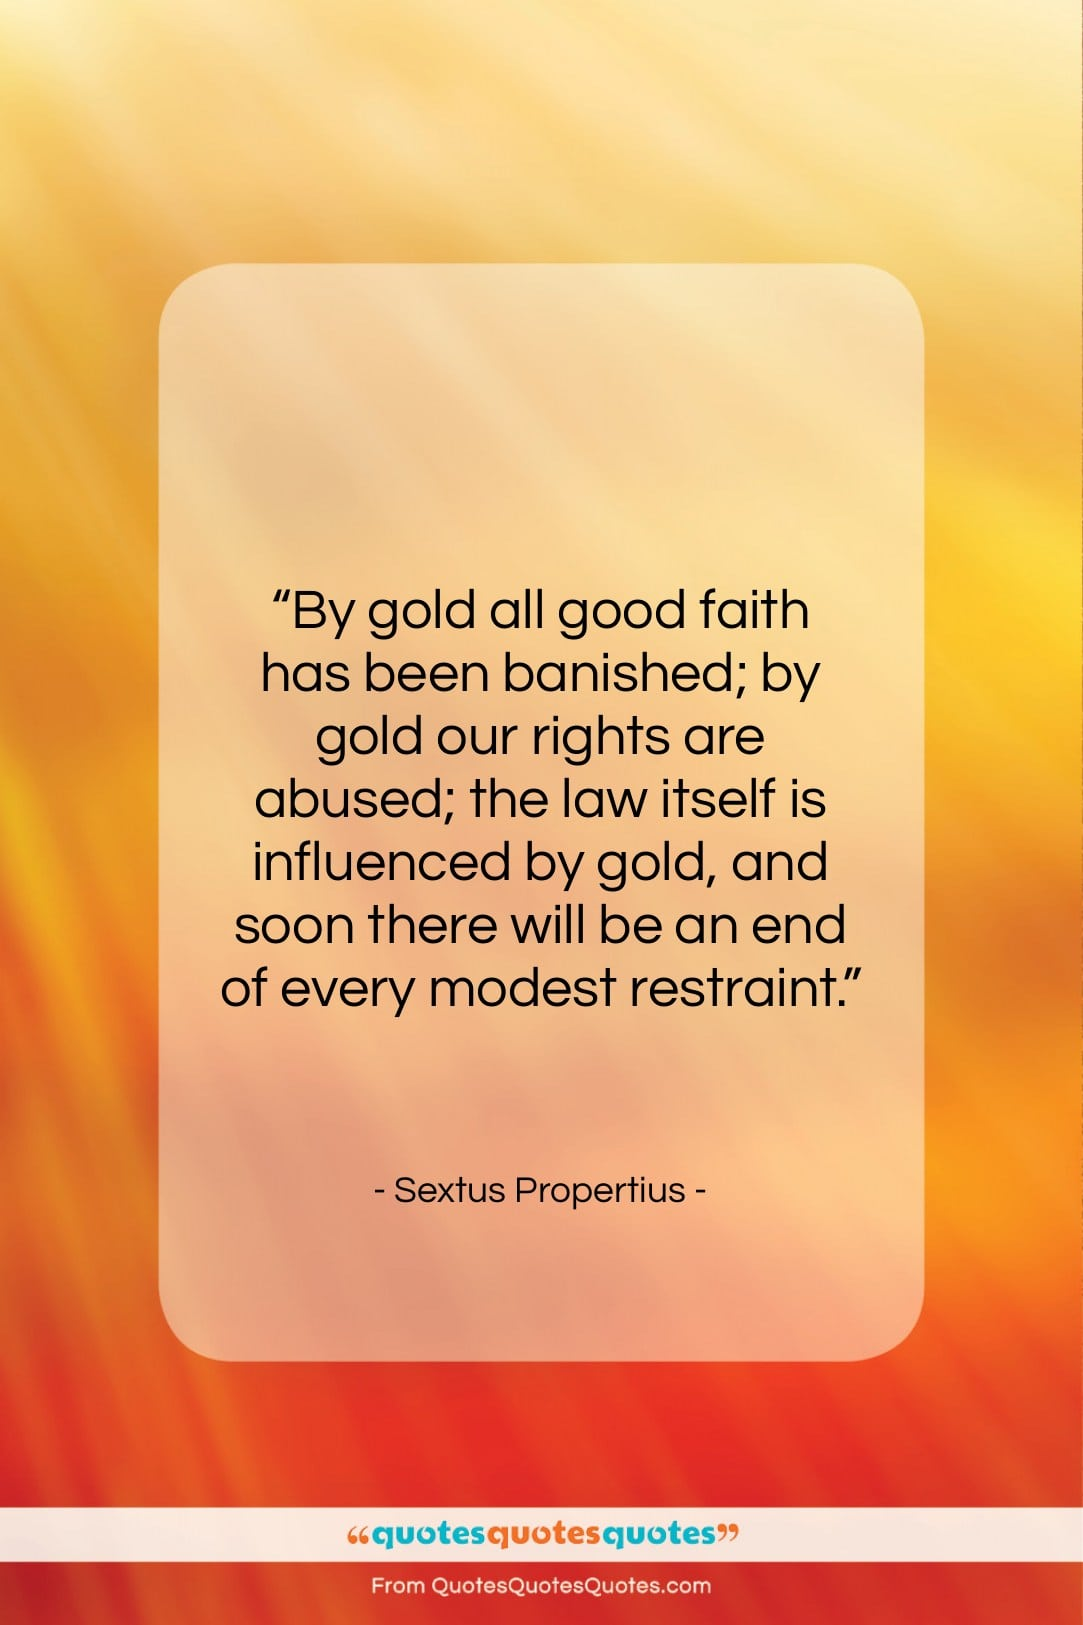 """Sextus Propertius quote: """"By gold all good faith has been…""""- at QuotesQuotesQuotes.com"""